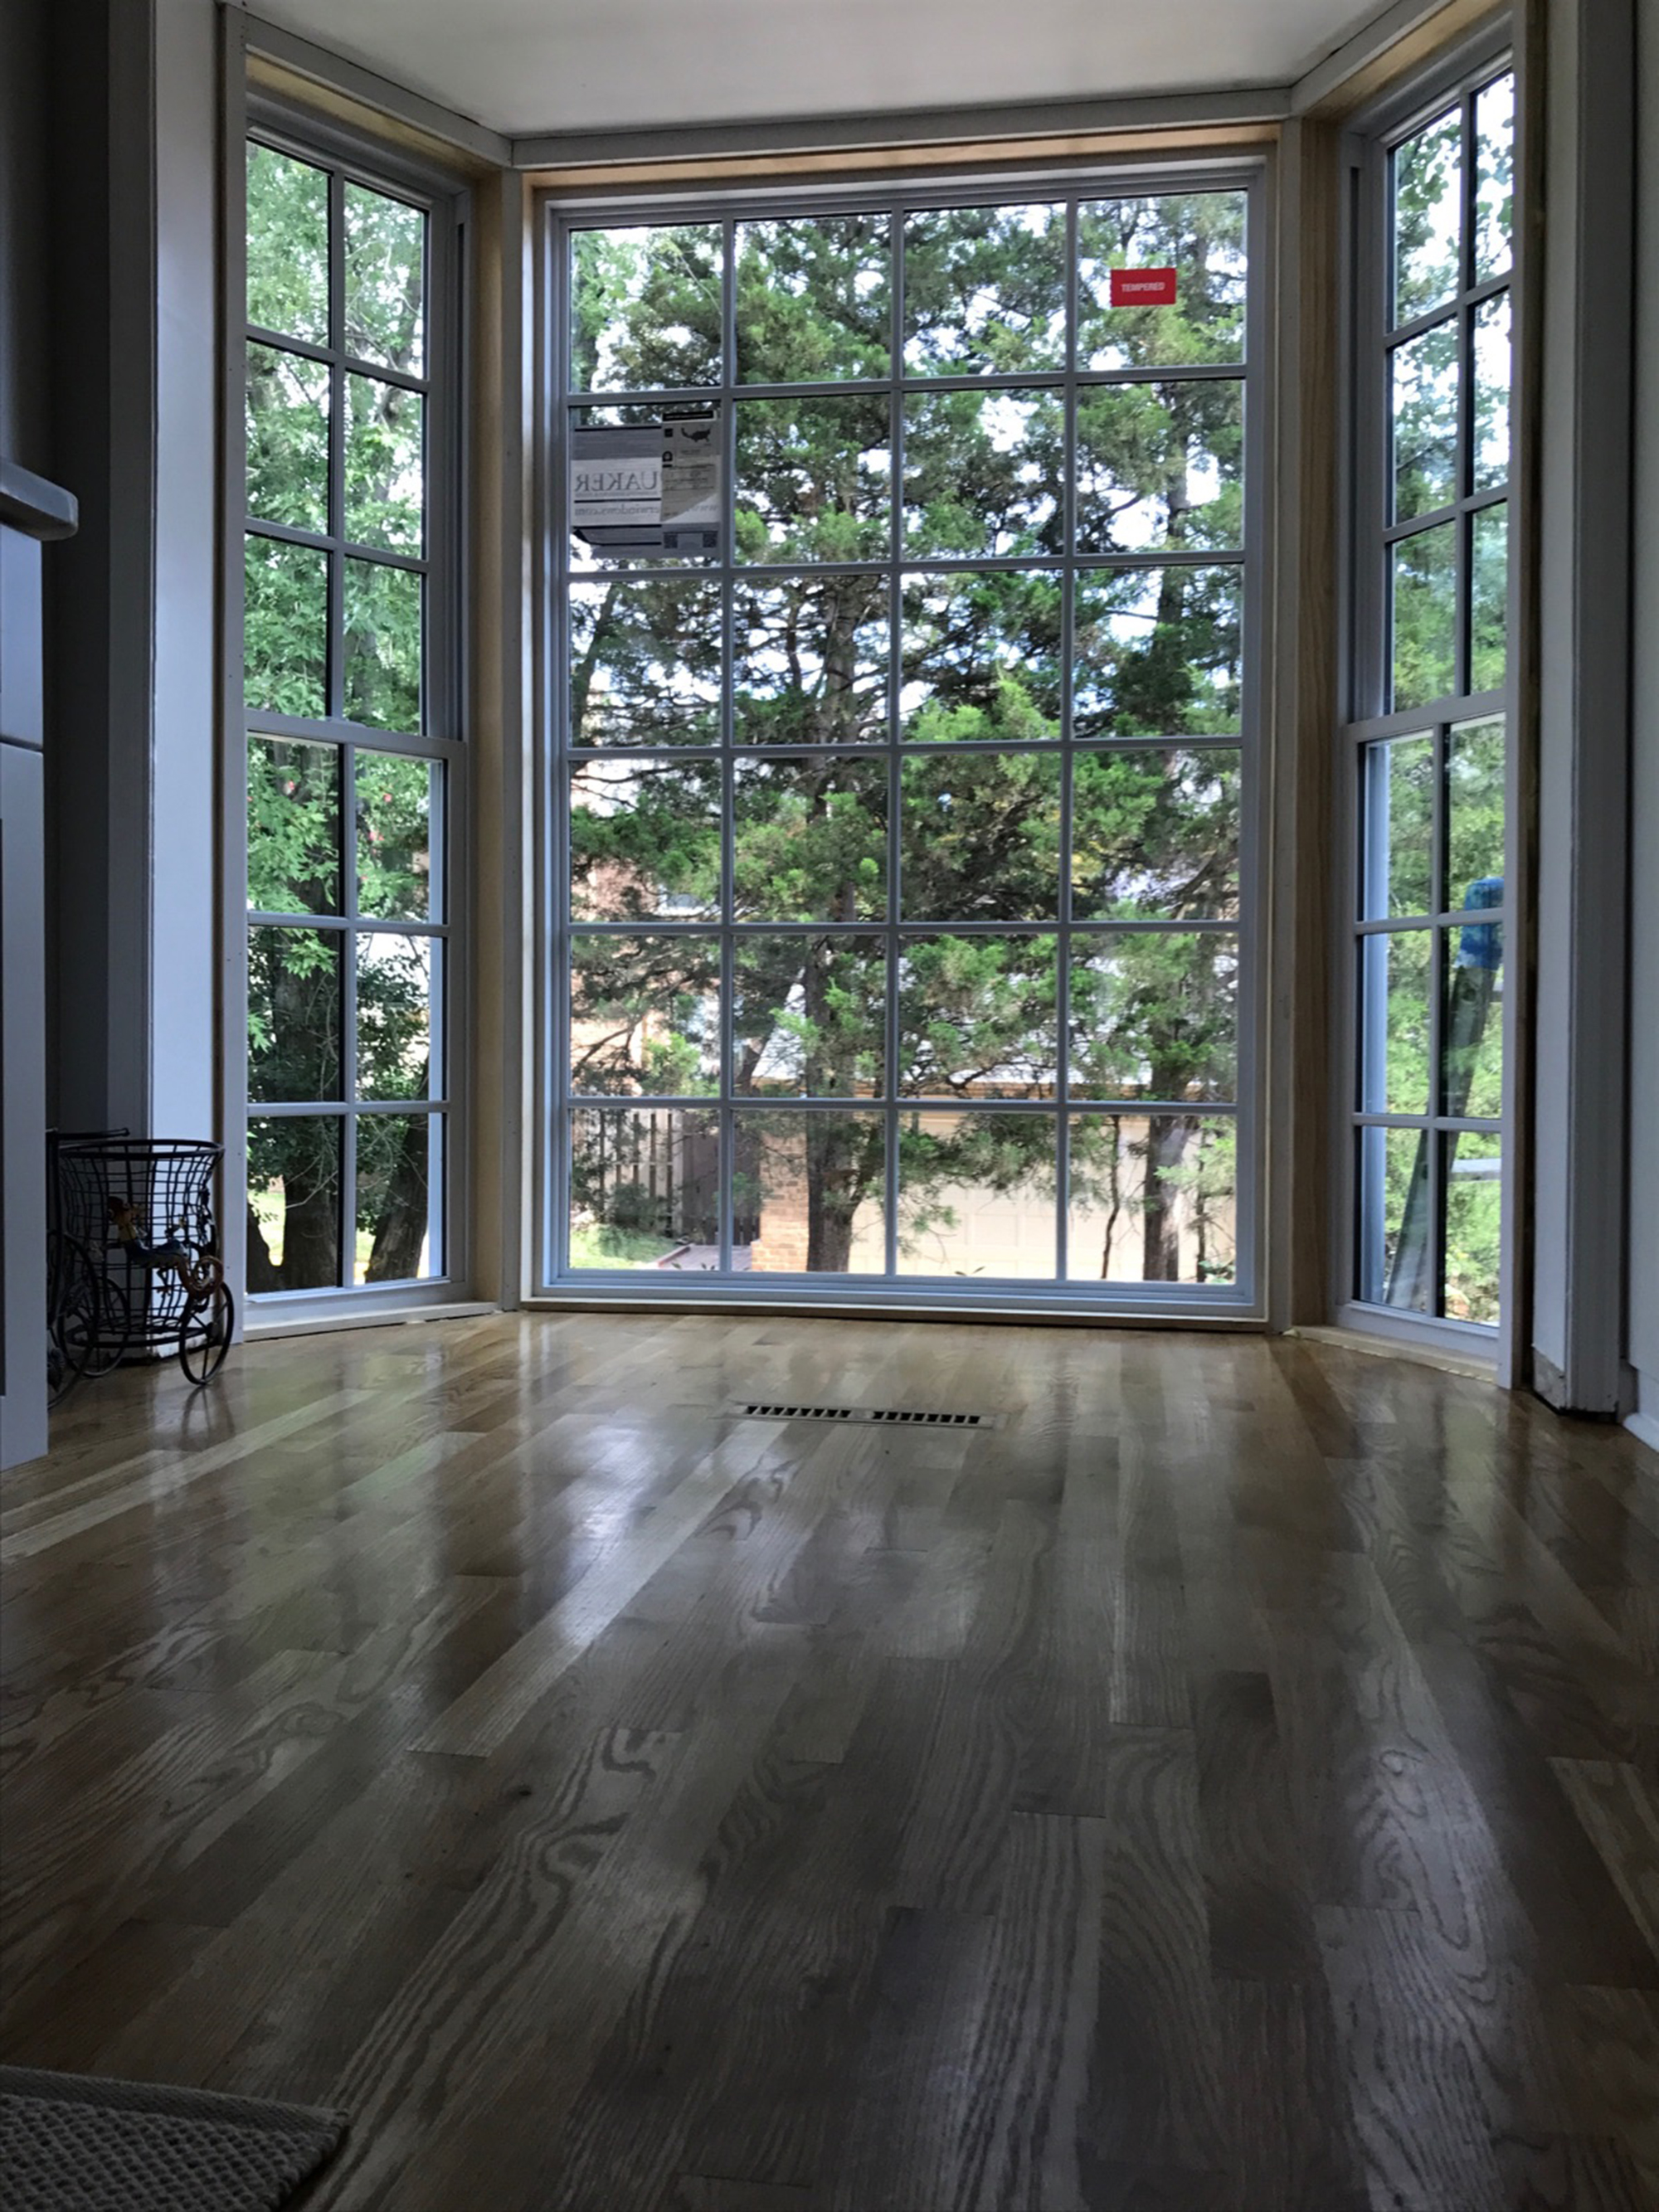 Three Baths Fully Renovated Hardwood Floors Throughout The Home All New Windows Including Bay Window And Heated Floor Tiles In Bat Walk Out